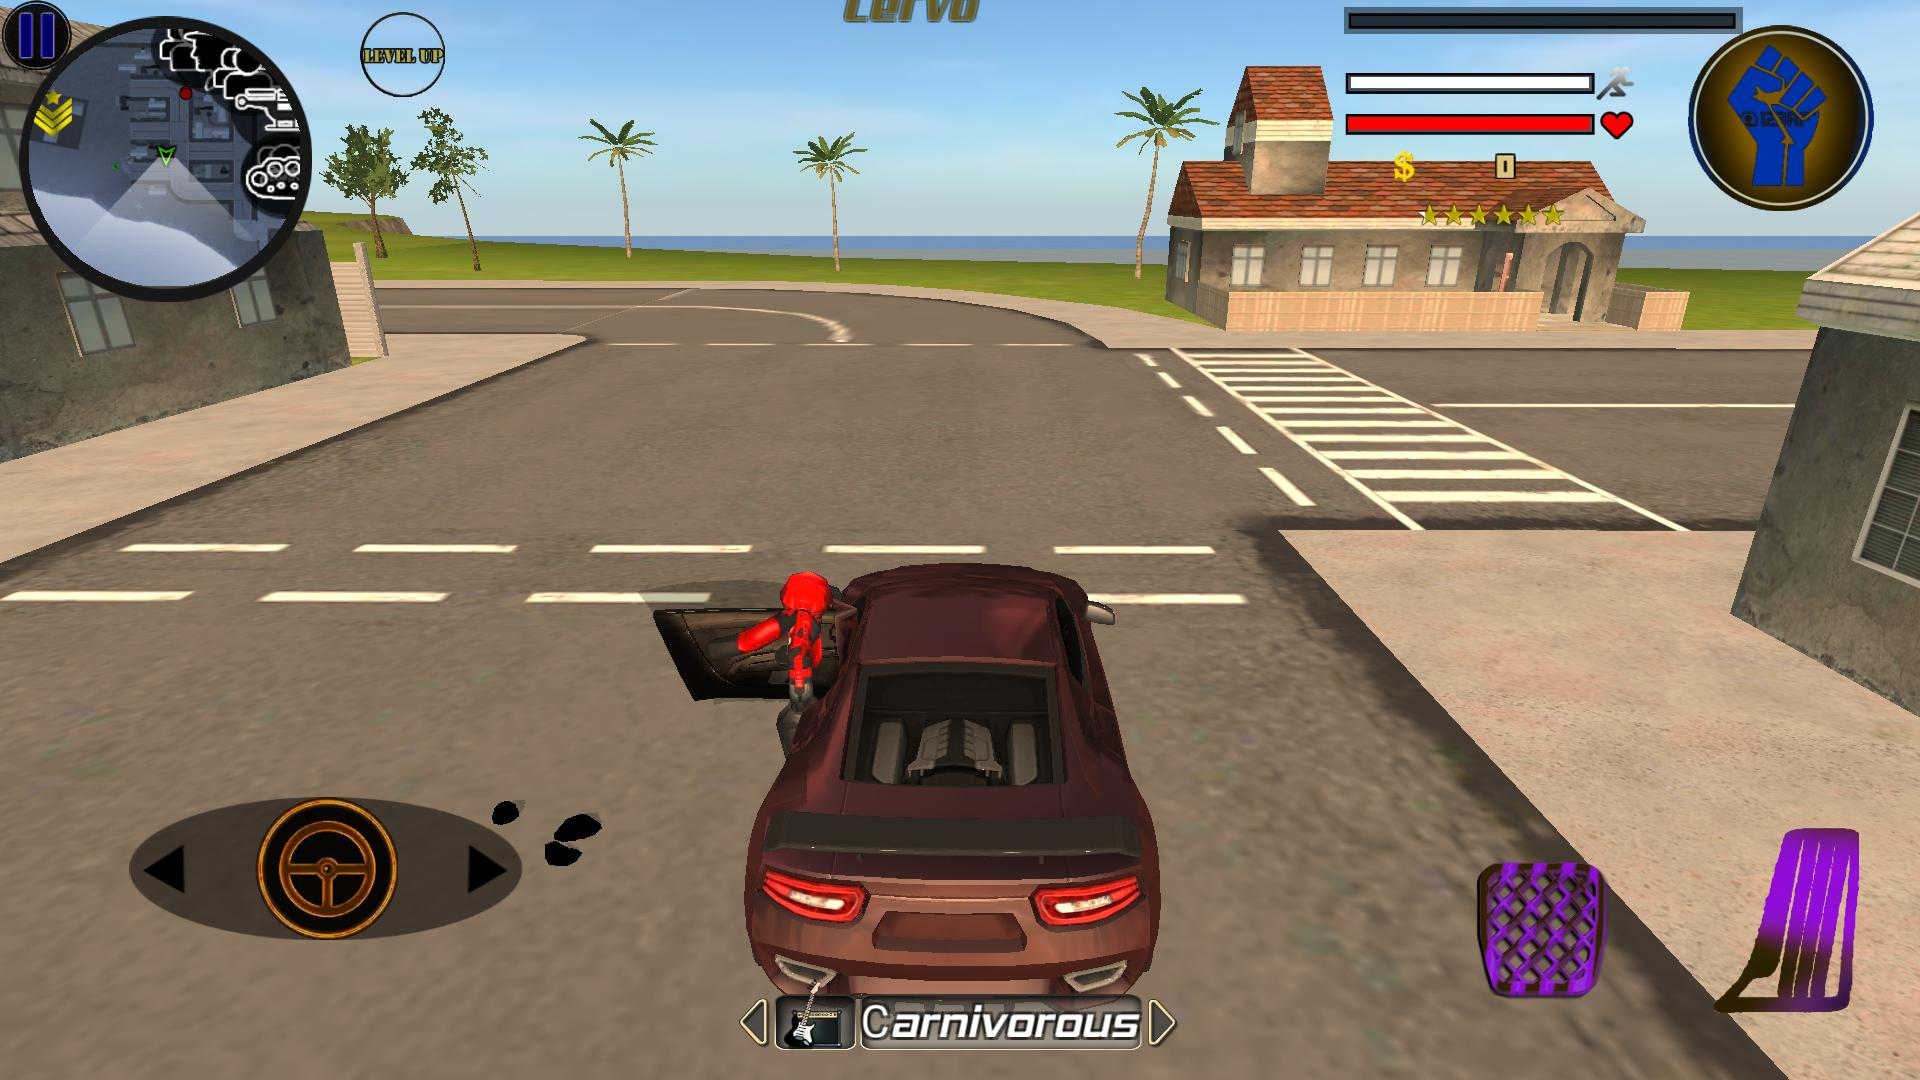 grand theft auto android game apk